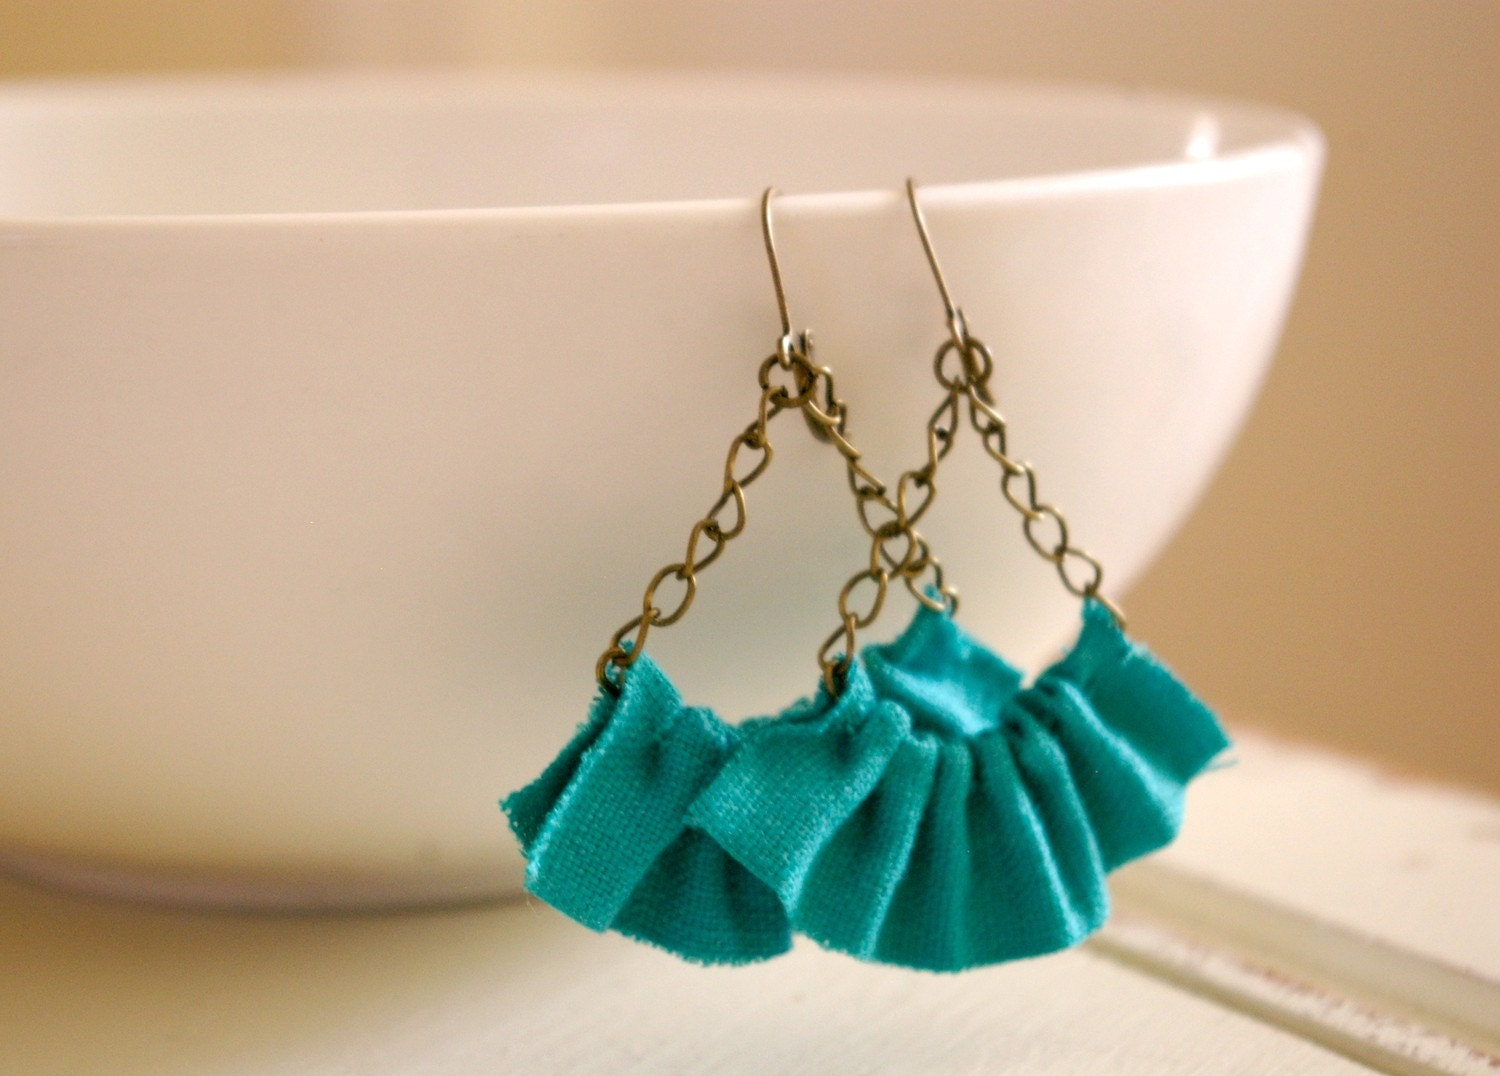 linen ruffle earrings in seafoam green. available in several other colors.